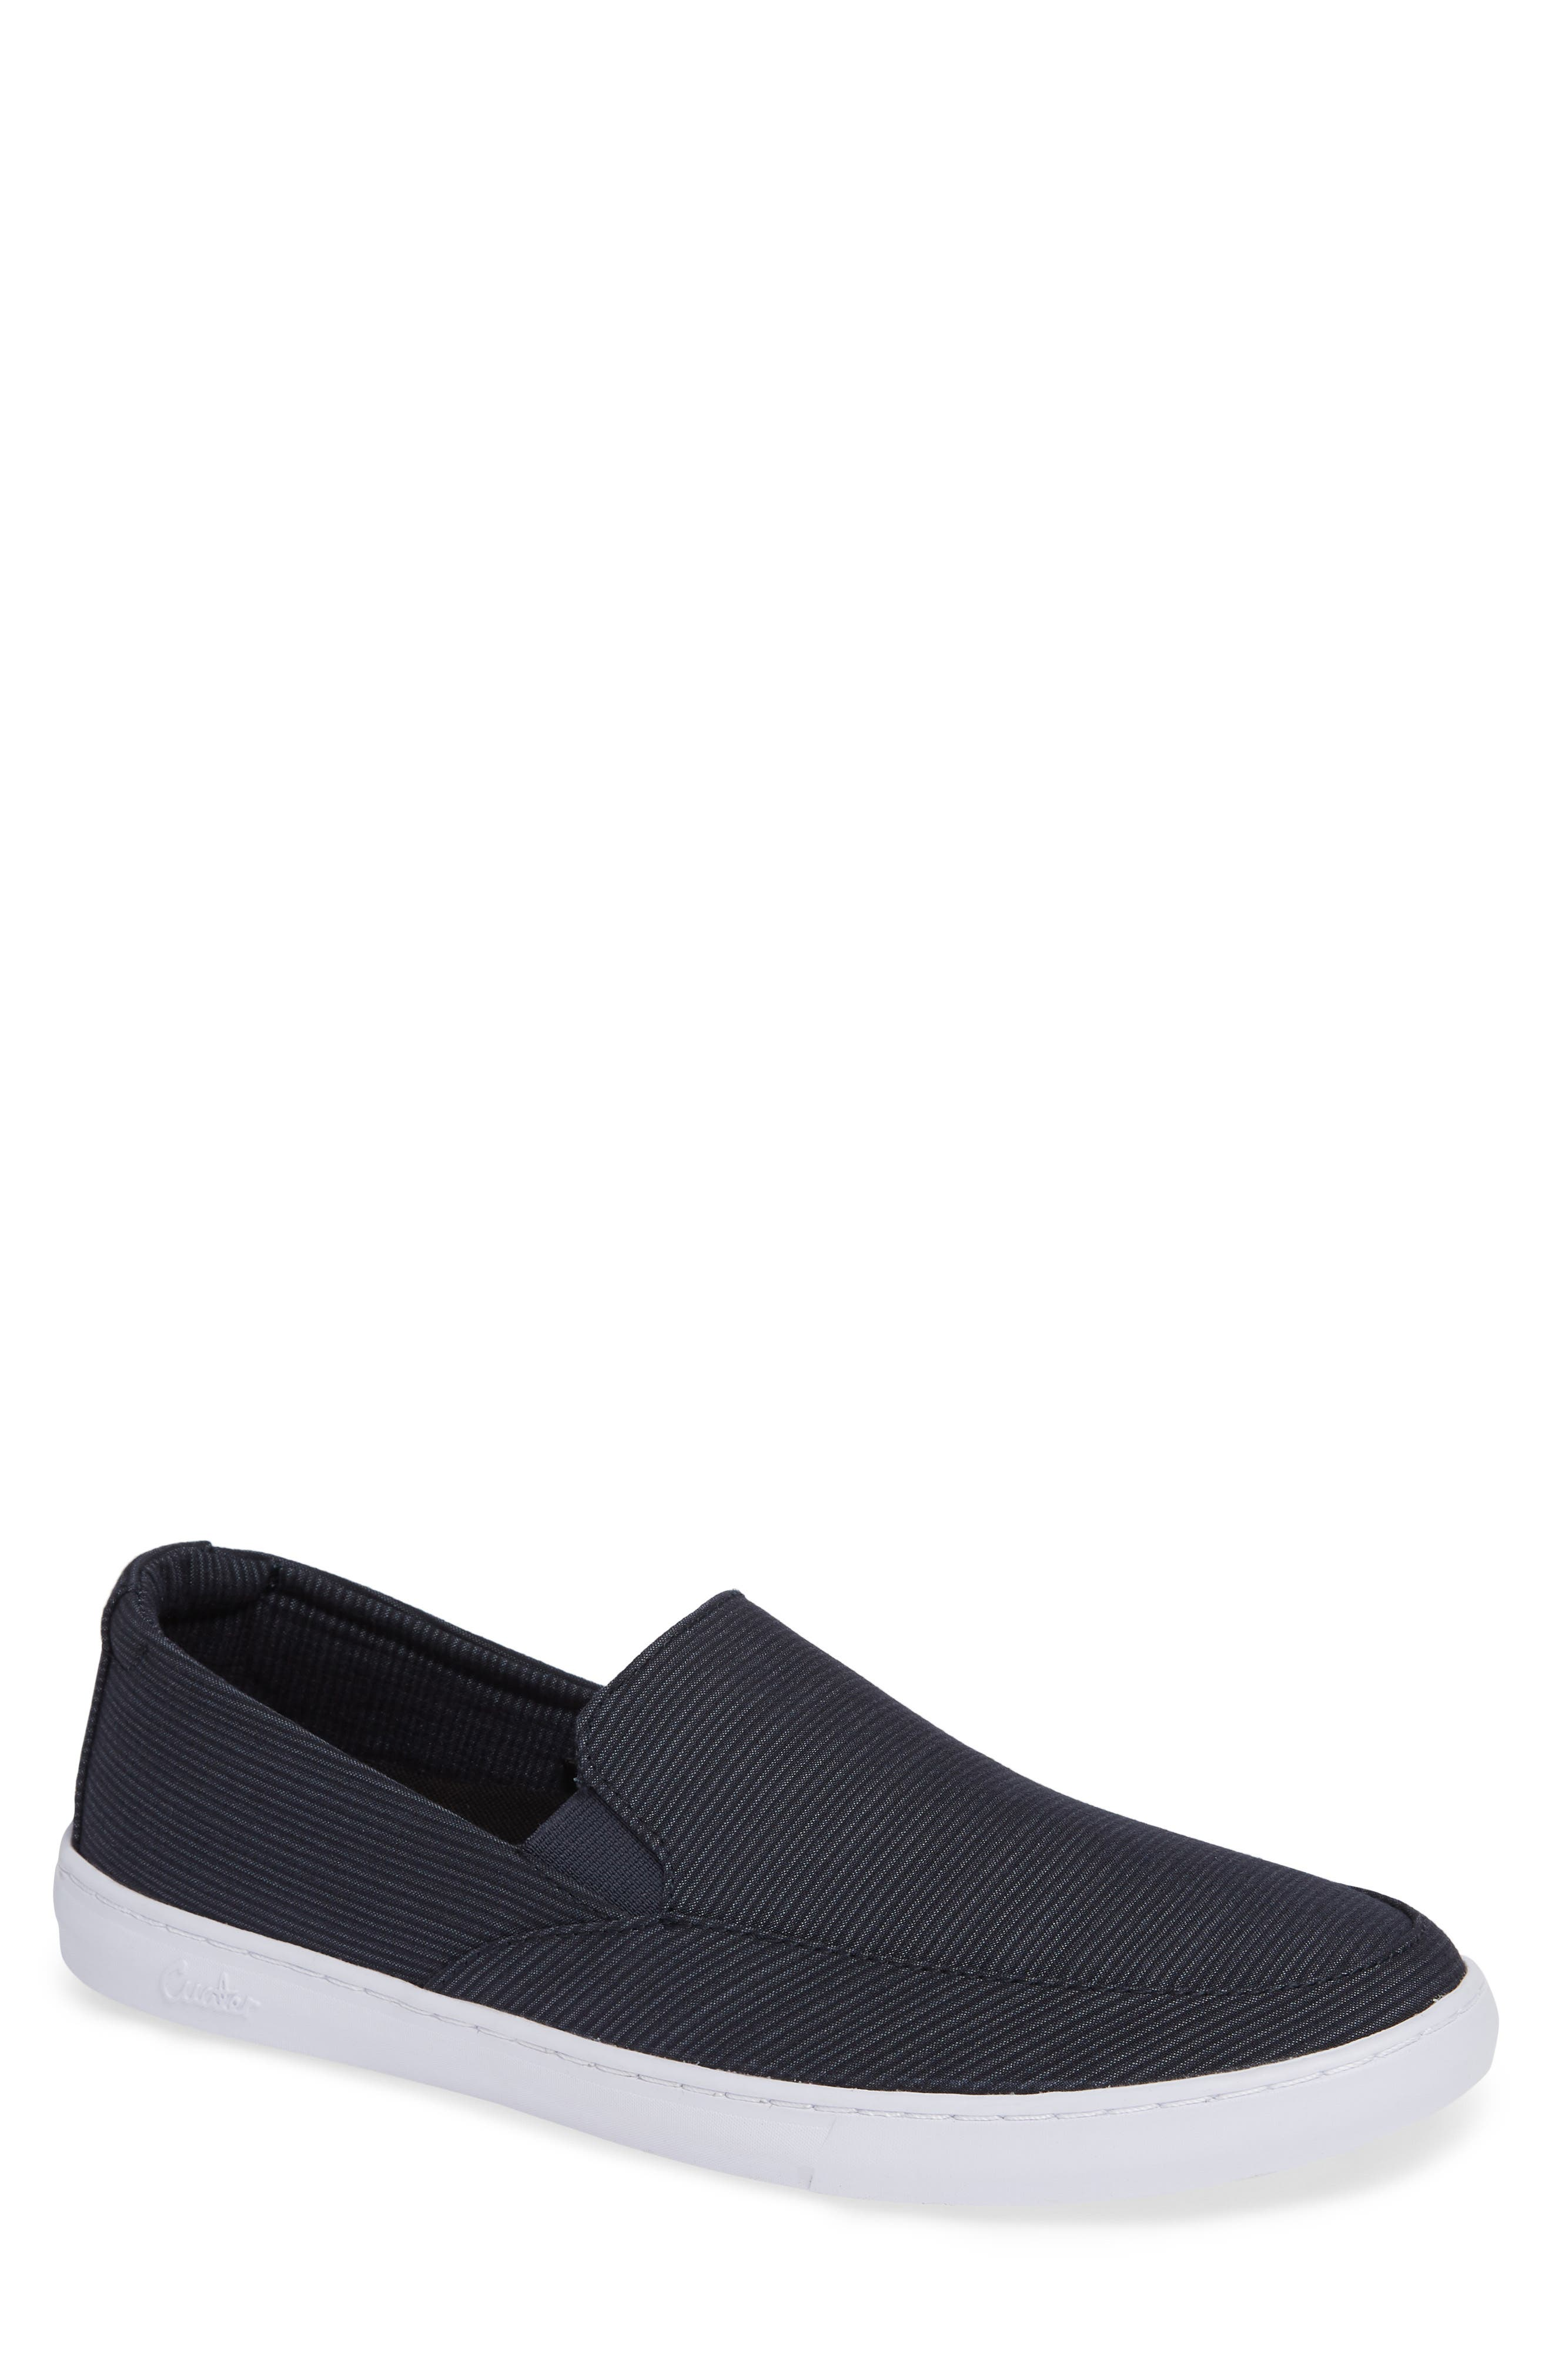 Cuater by Travis Mathew  Tracers Slip-On Sneaker,                         Main,                         color, BLUE NIGHTS